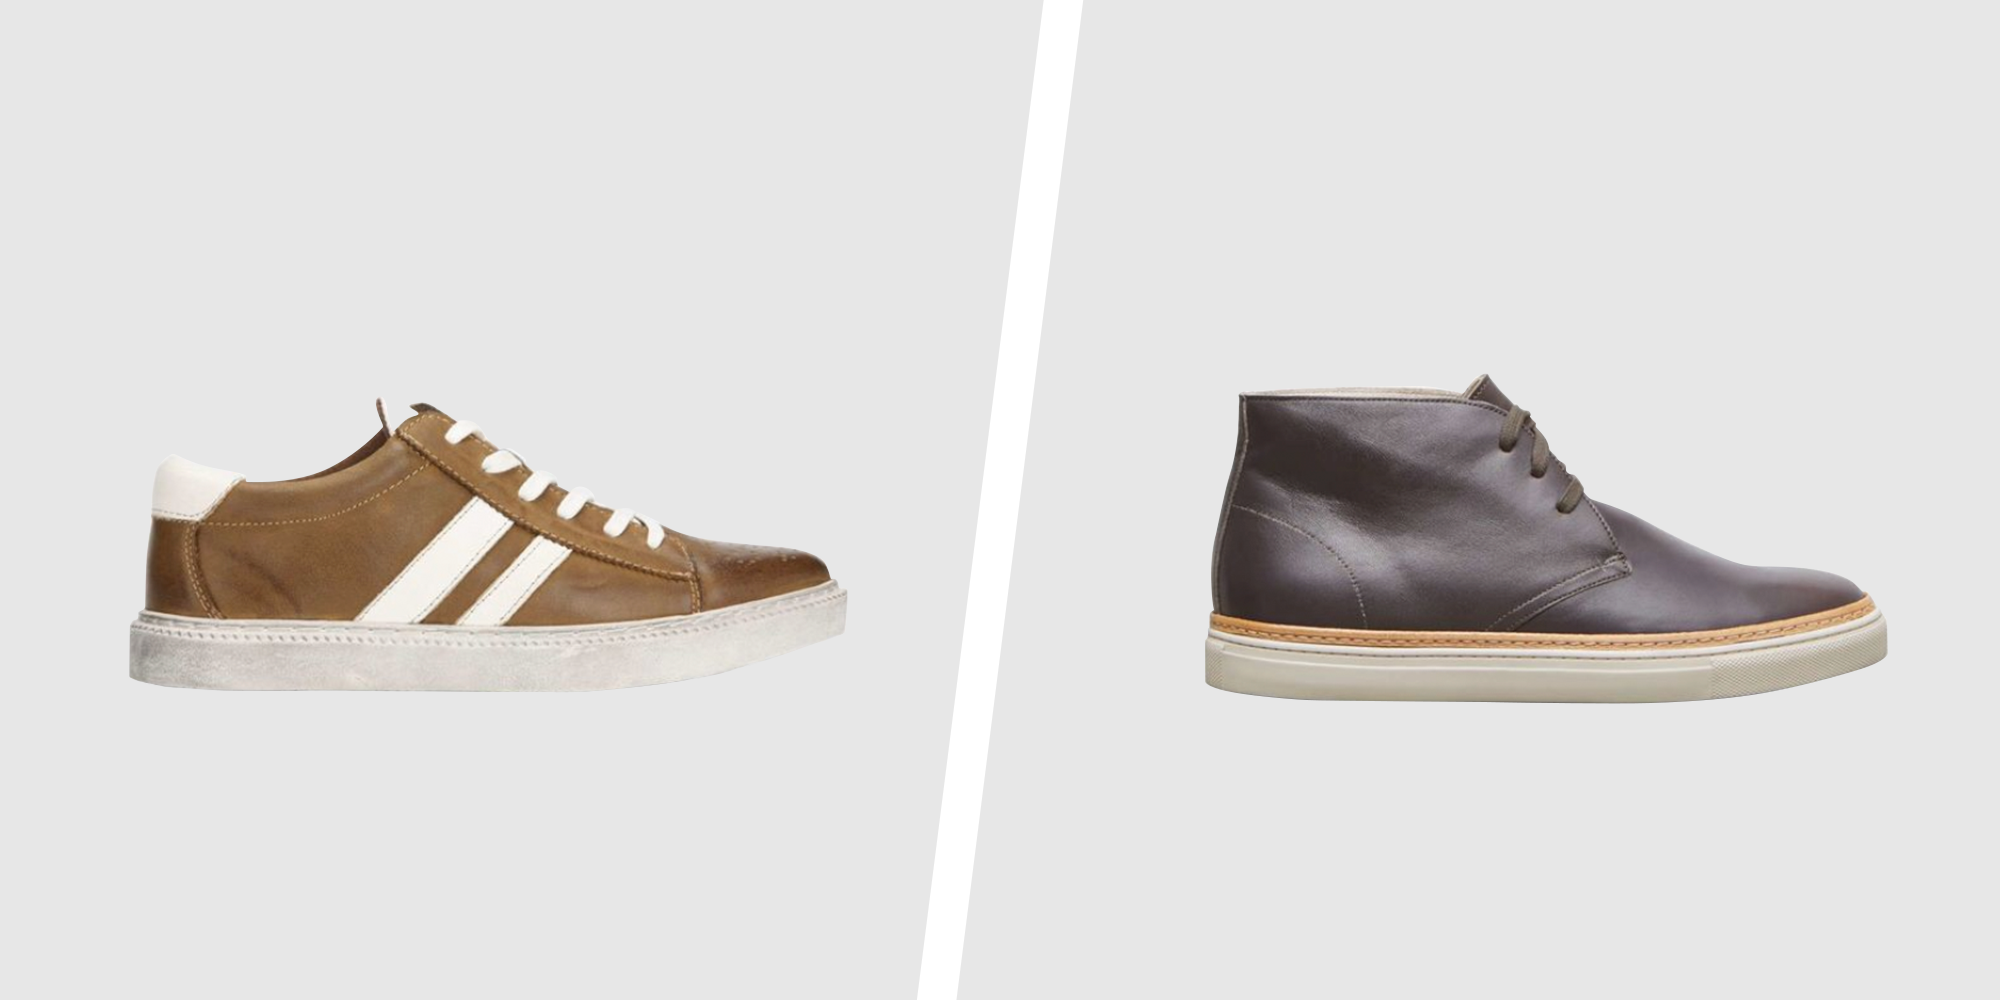 These High-Quality Kenneth Cole Shoes Are 40% Off Right Now